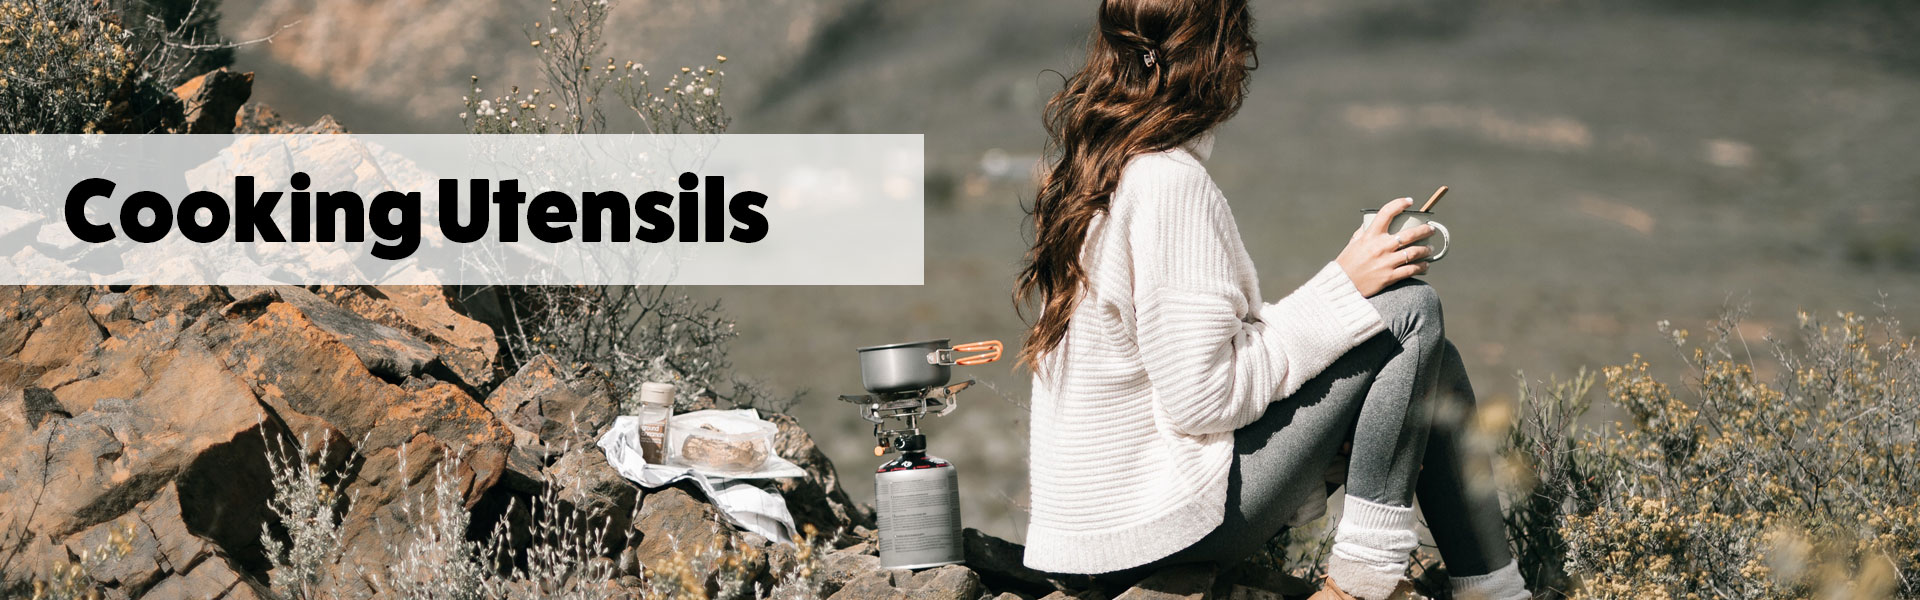 Cooking Utensils With A Girl Sitting In The Mountains